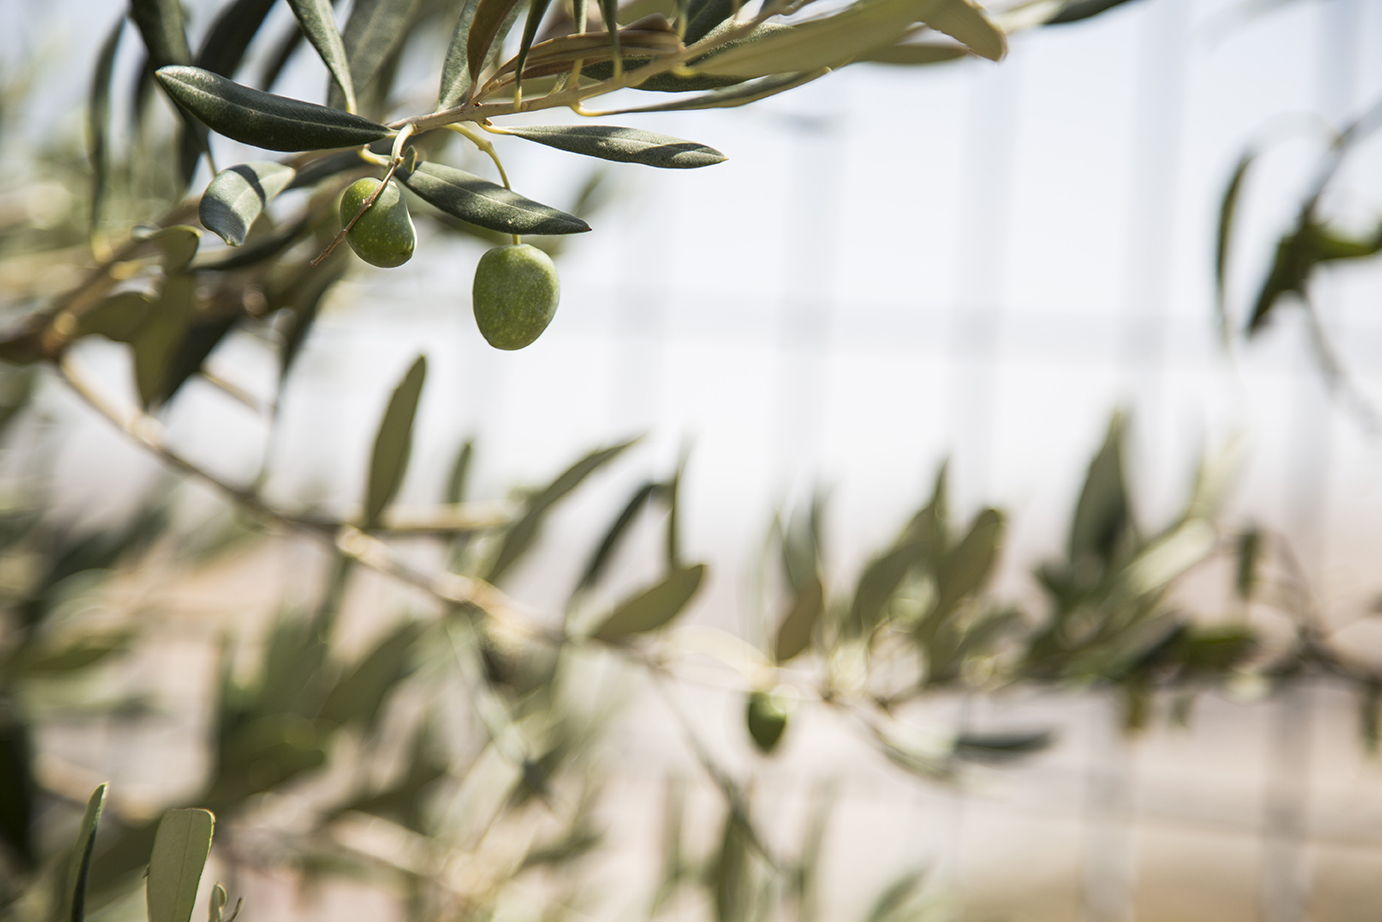 Olive tree palestine the olive tree is a symbol of palestine for palestinians it signifies deep roots with their country and emphasizes the importance of agriculture and buycottarizona Choice Image